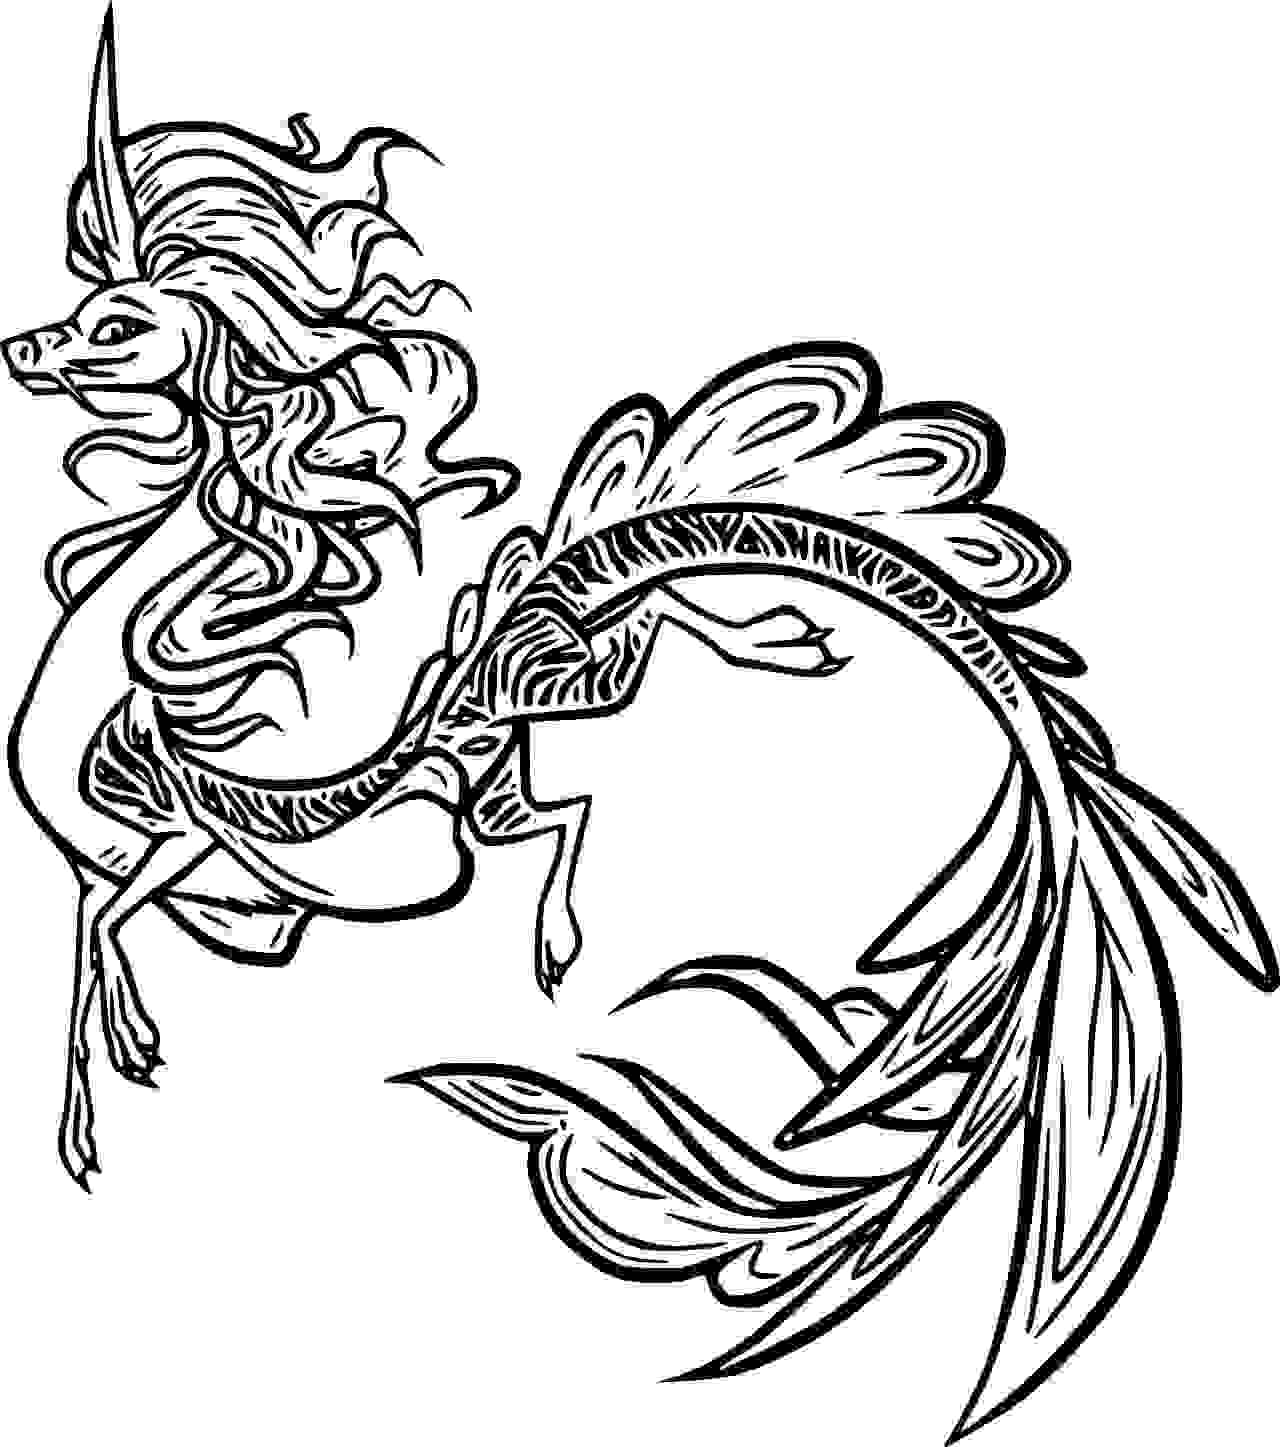 Beautiful Sisu Dragon from Raya and the Last Dragon Coloring Page